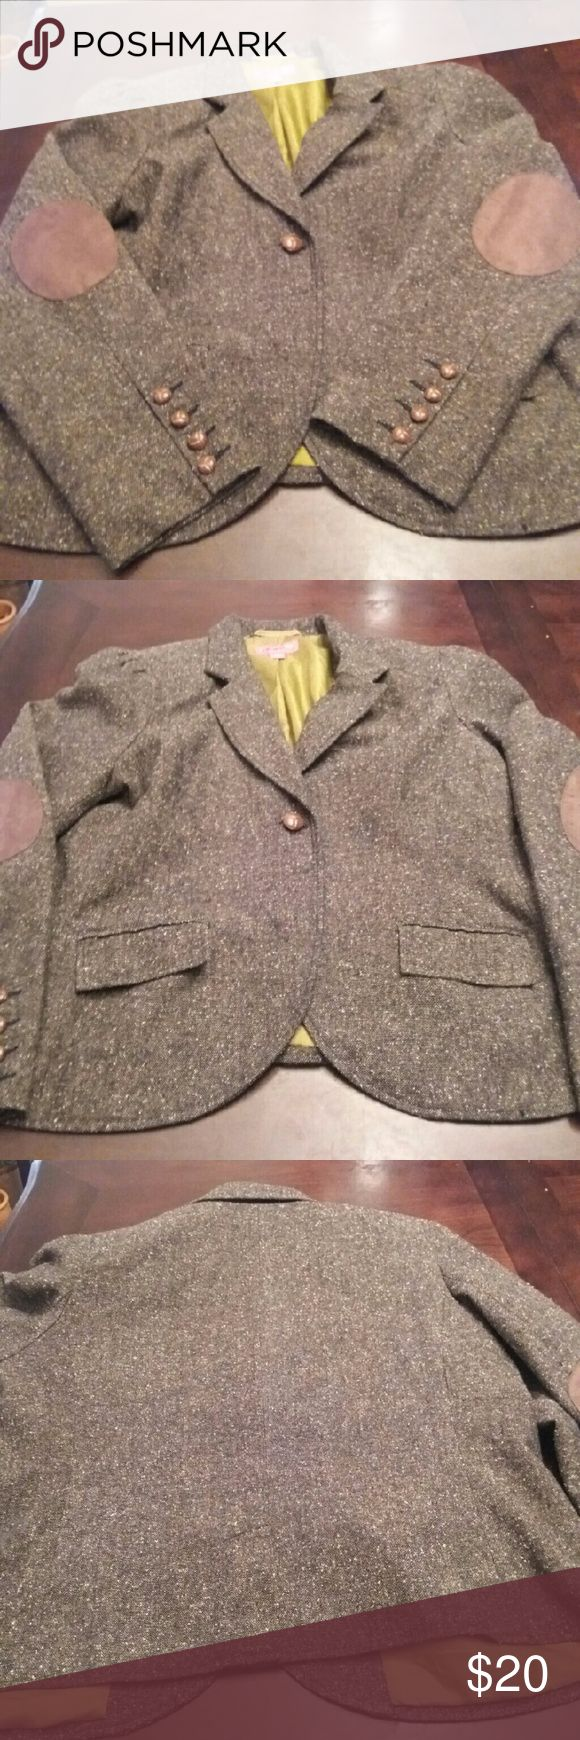 Gorgeous blazer Tweed style blazer with elbow patches.  Great paired with slacks for work or to dress up a pair of jeans.   Maternity size XL Jackets & Coats Blazers